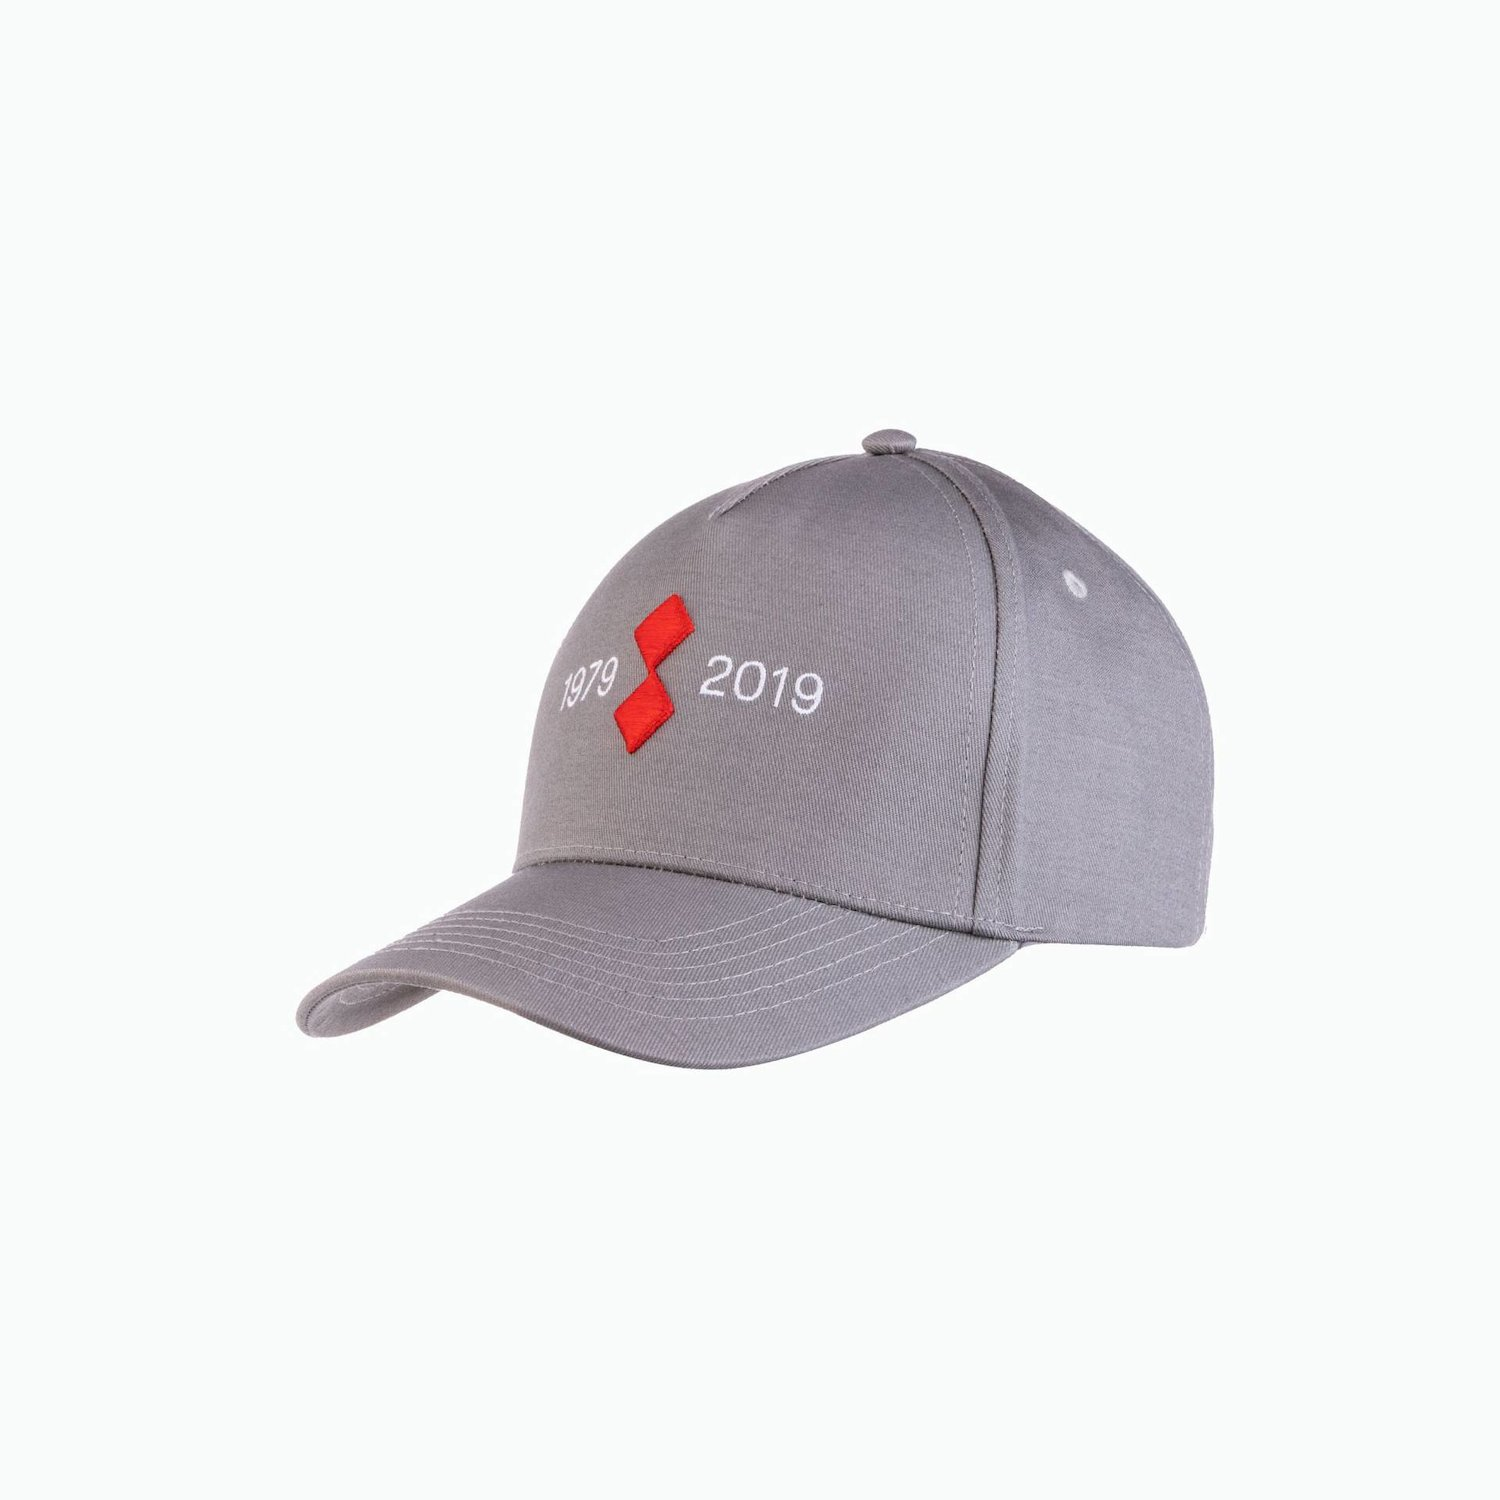 40th 2 Cap - Grey